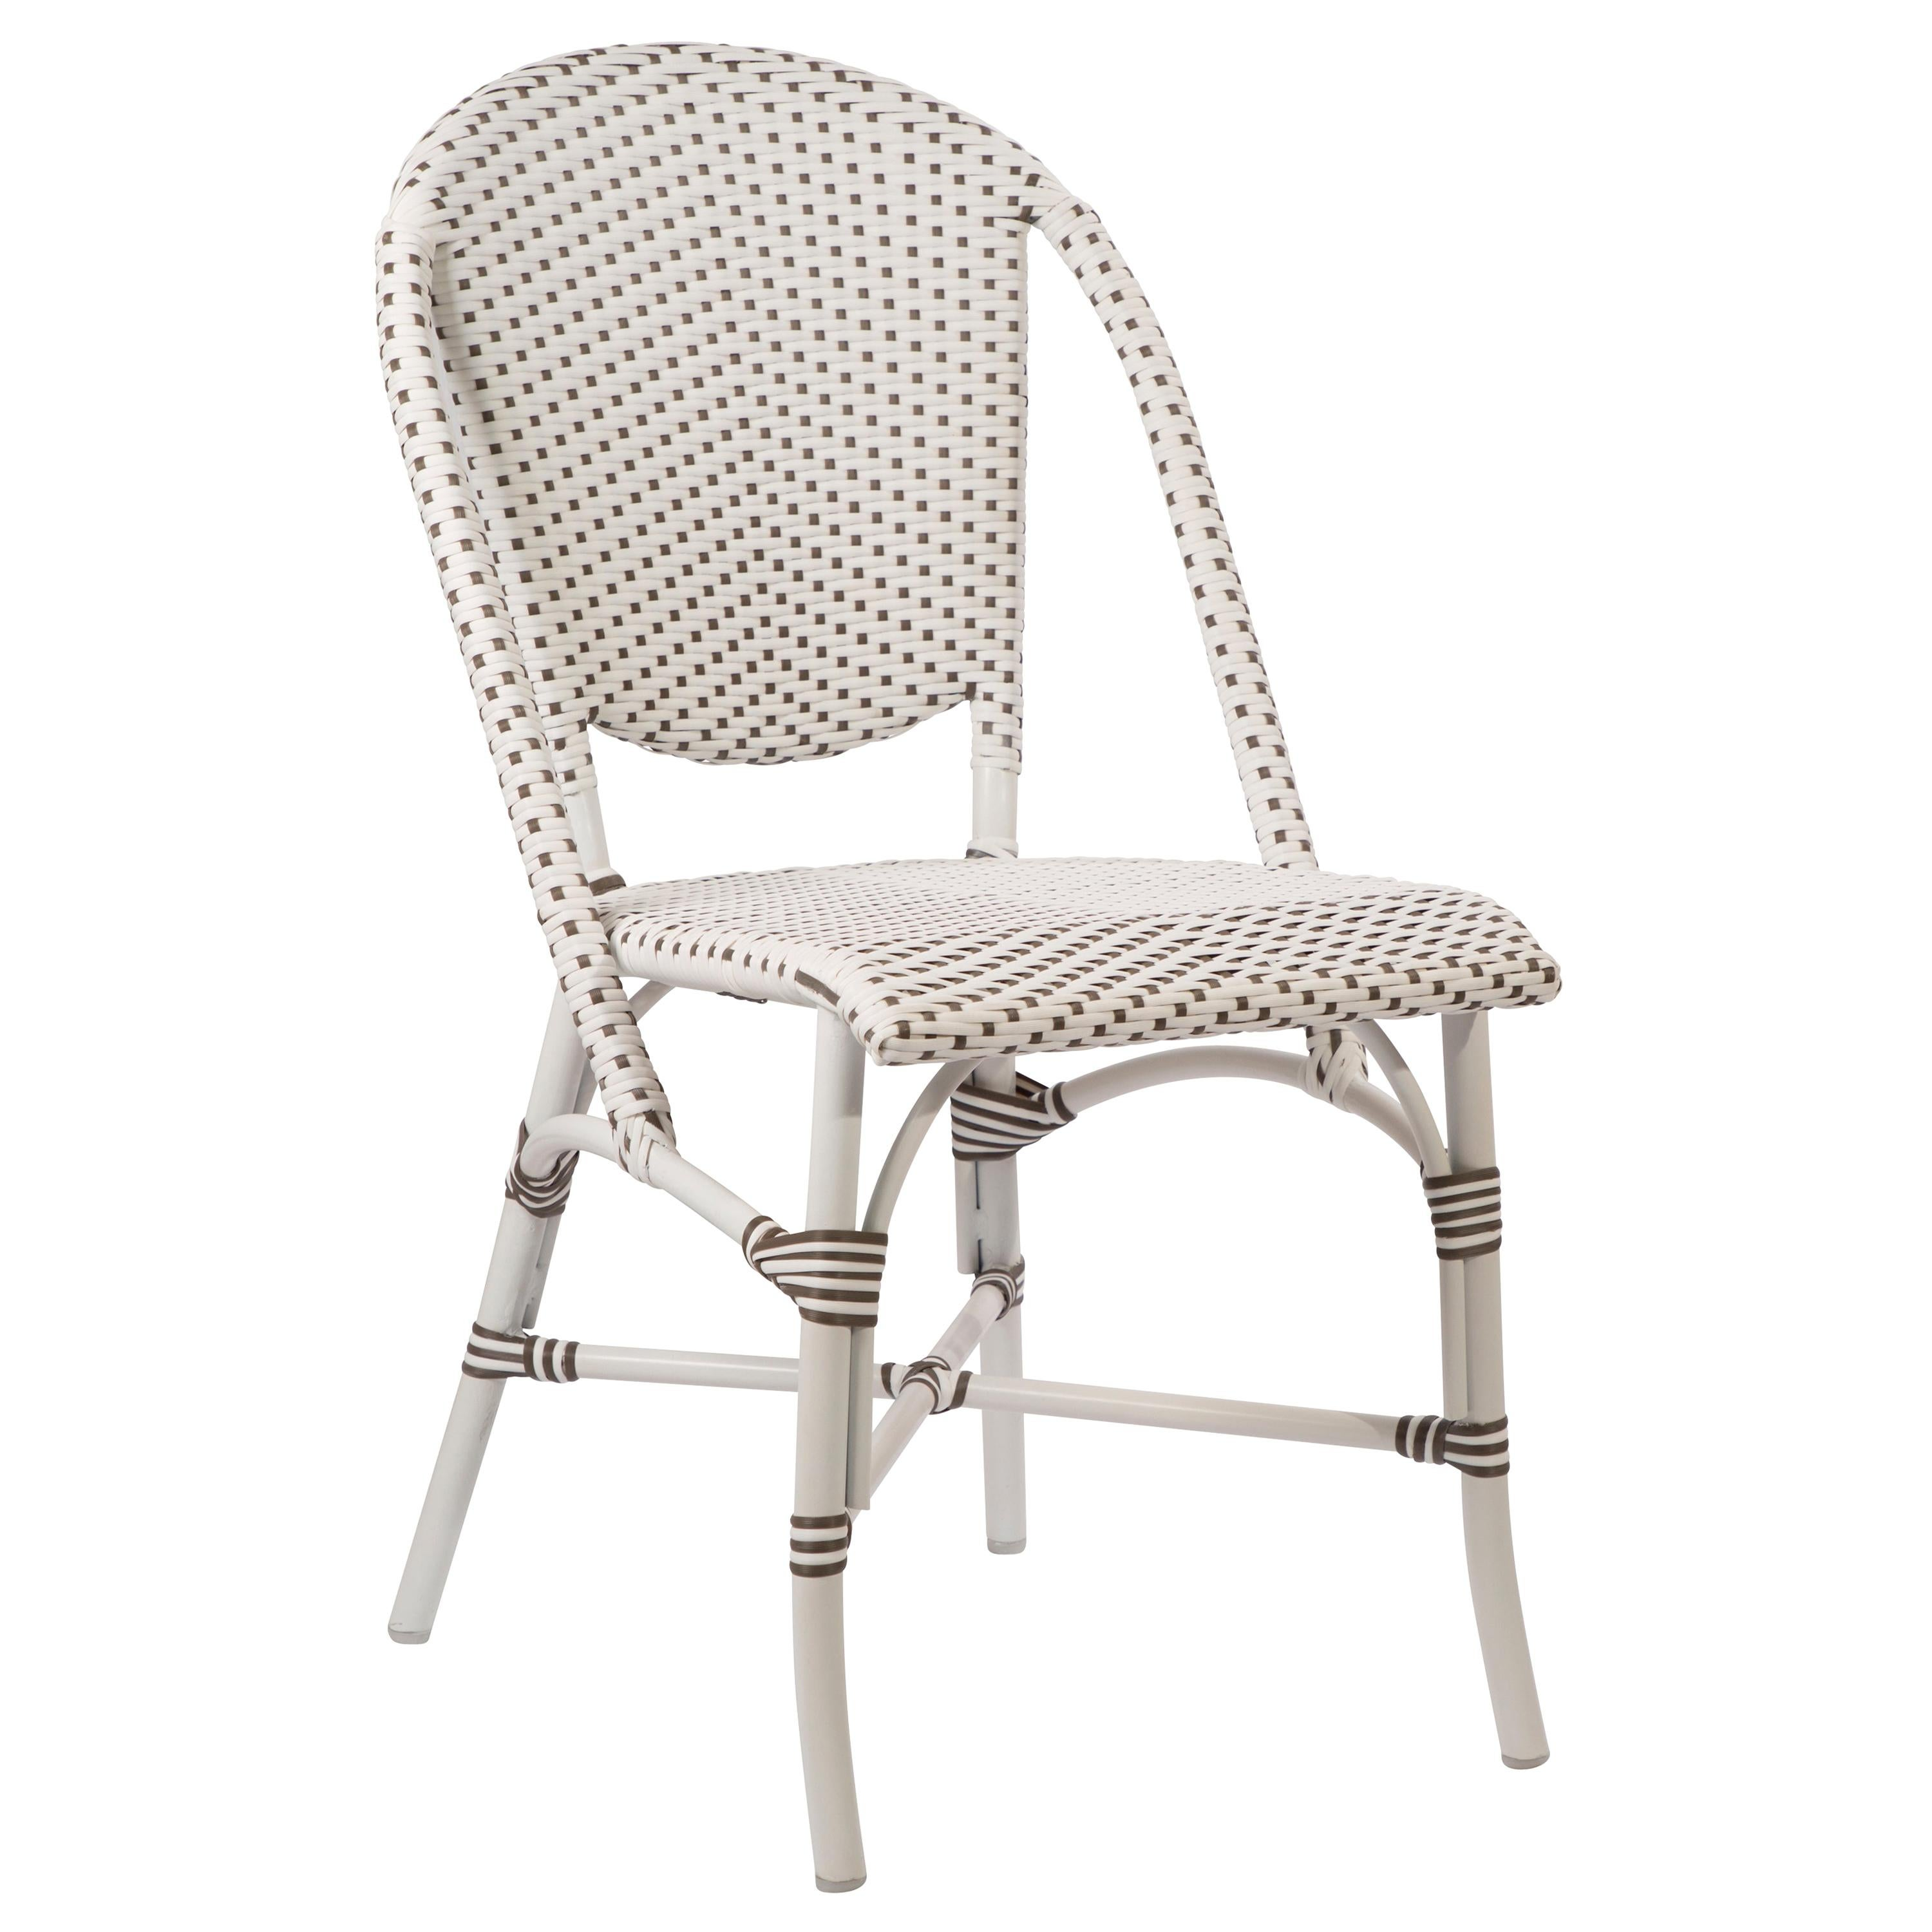 Sika Design Sofie Rattan Outdoor Bistro Side Chair in White with Cappuccino Dots